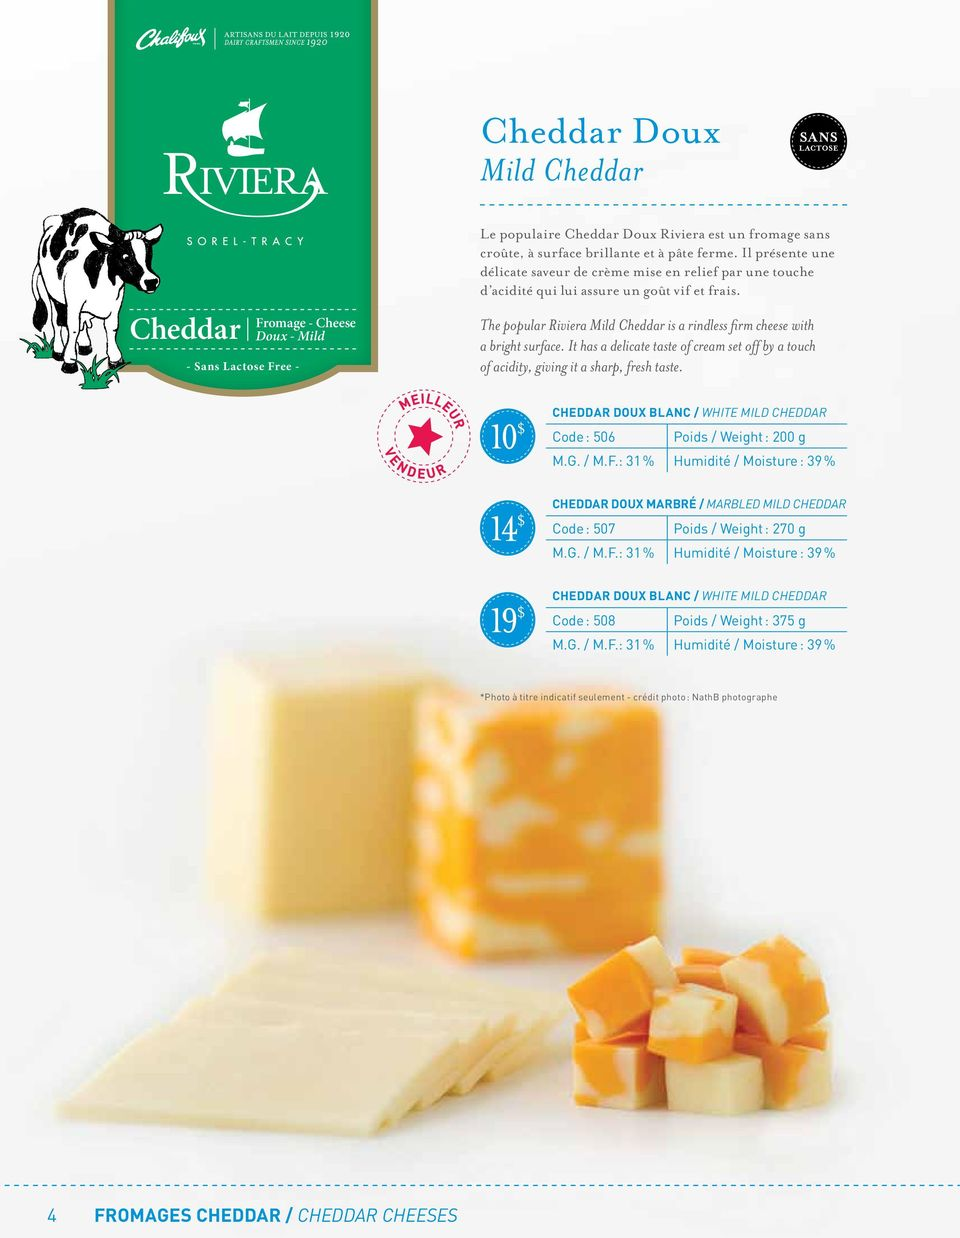 It has a delicate taste of cream set off by a touch of acidity, giving it a sharp, fresh taste. 10 $ Cheddar doux Blanc / White Mild Cheddar Code : 506 Poids / Weight : 200 g M.G. / M.F.